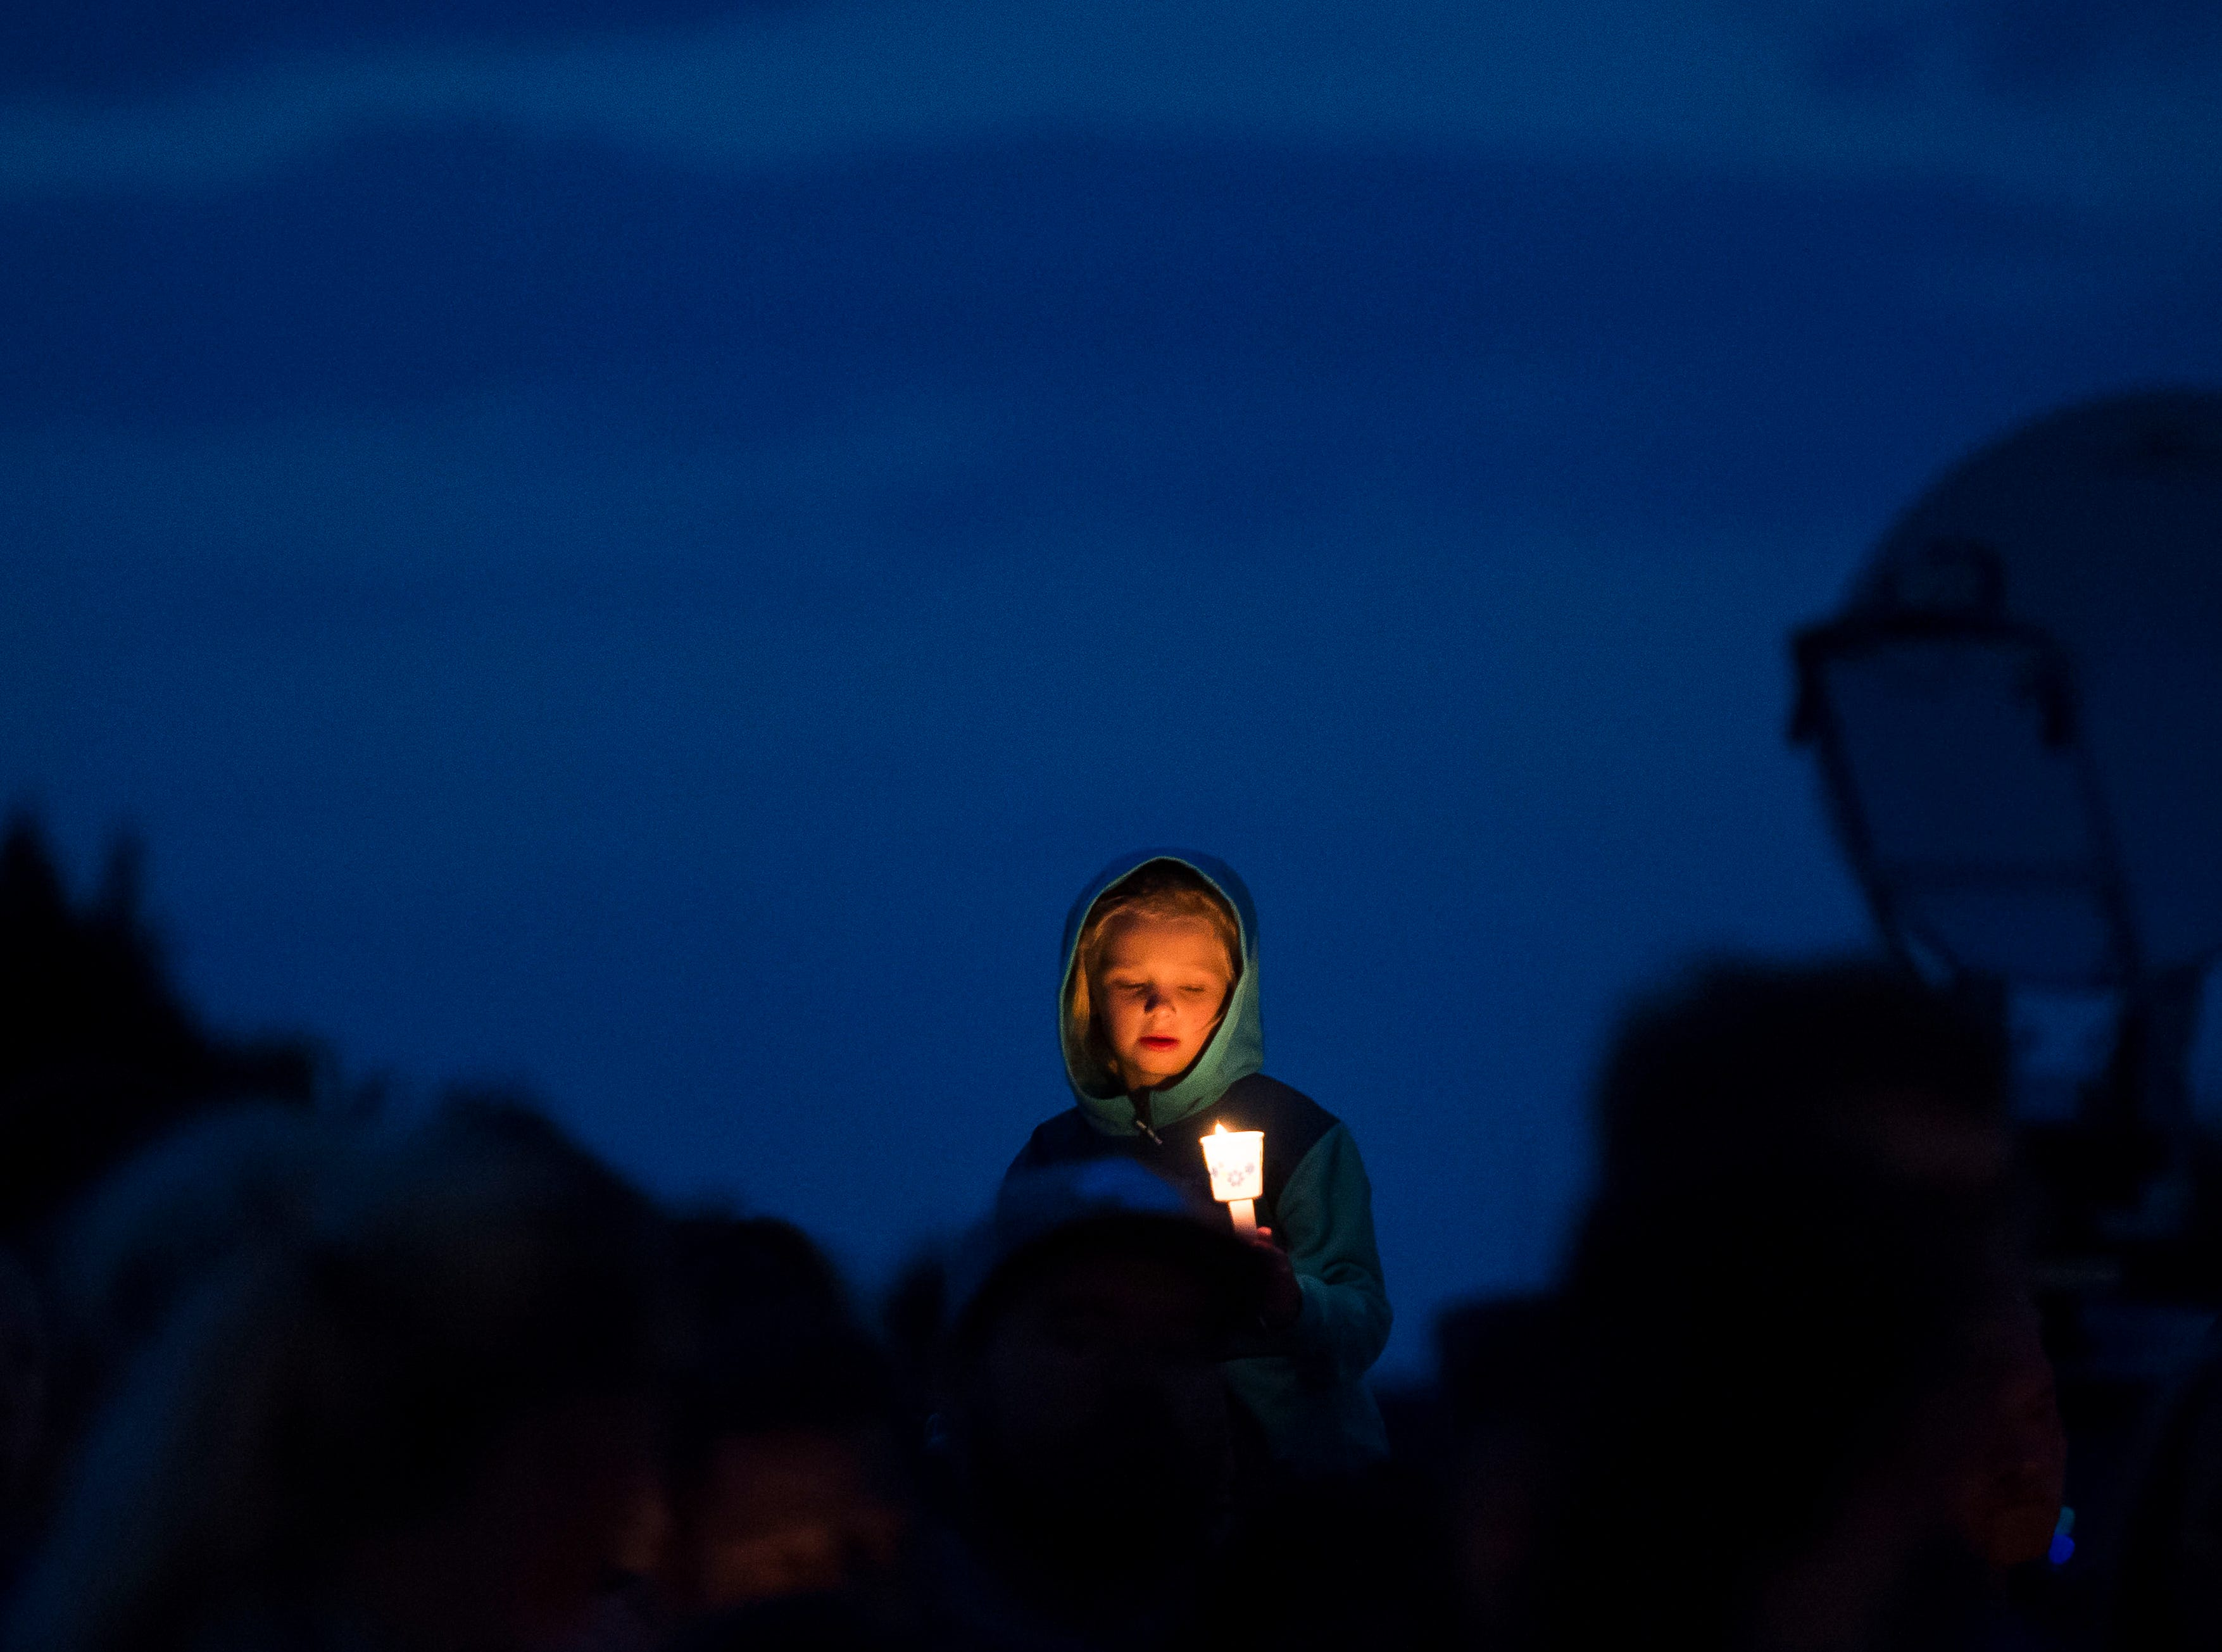 A child holds a candle while sitting on an adult's shoulders at a candle-lit vigil for the slain Shanann Watts and her two daughters, Bella, 4, and Celeste, 3, in front of the Watts' family home on Friday, Aug. 17, 2018, in Frederick, Colo.